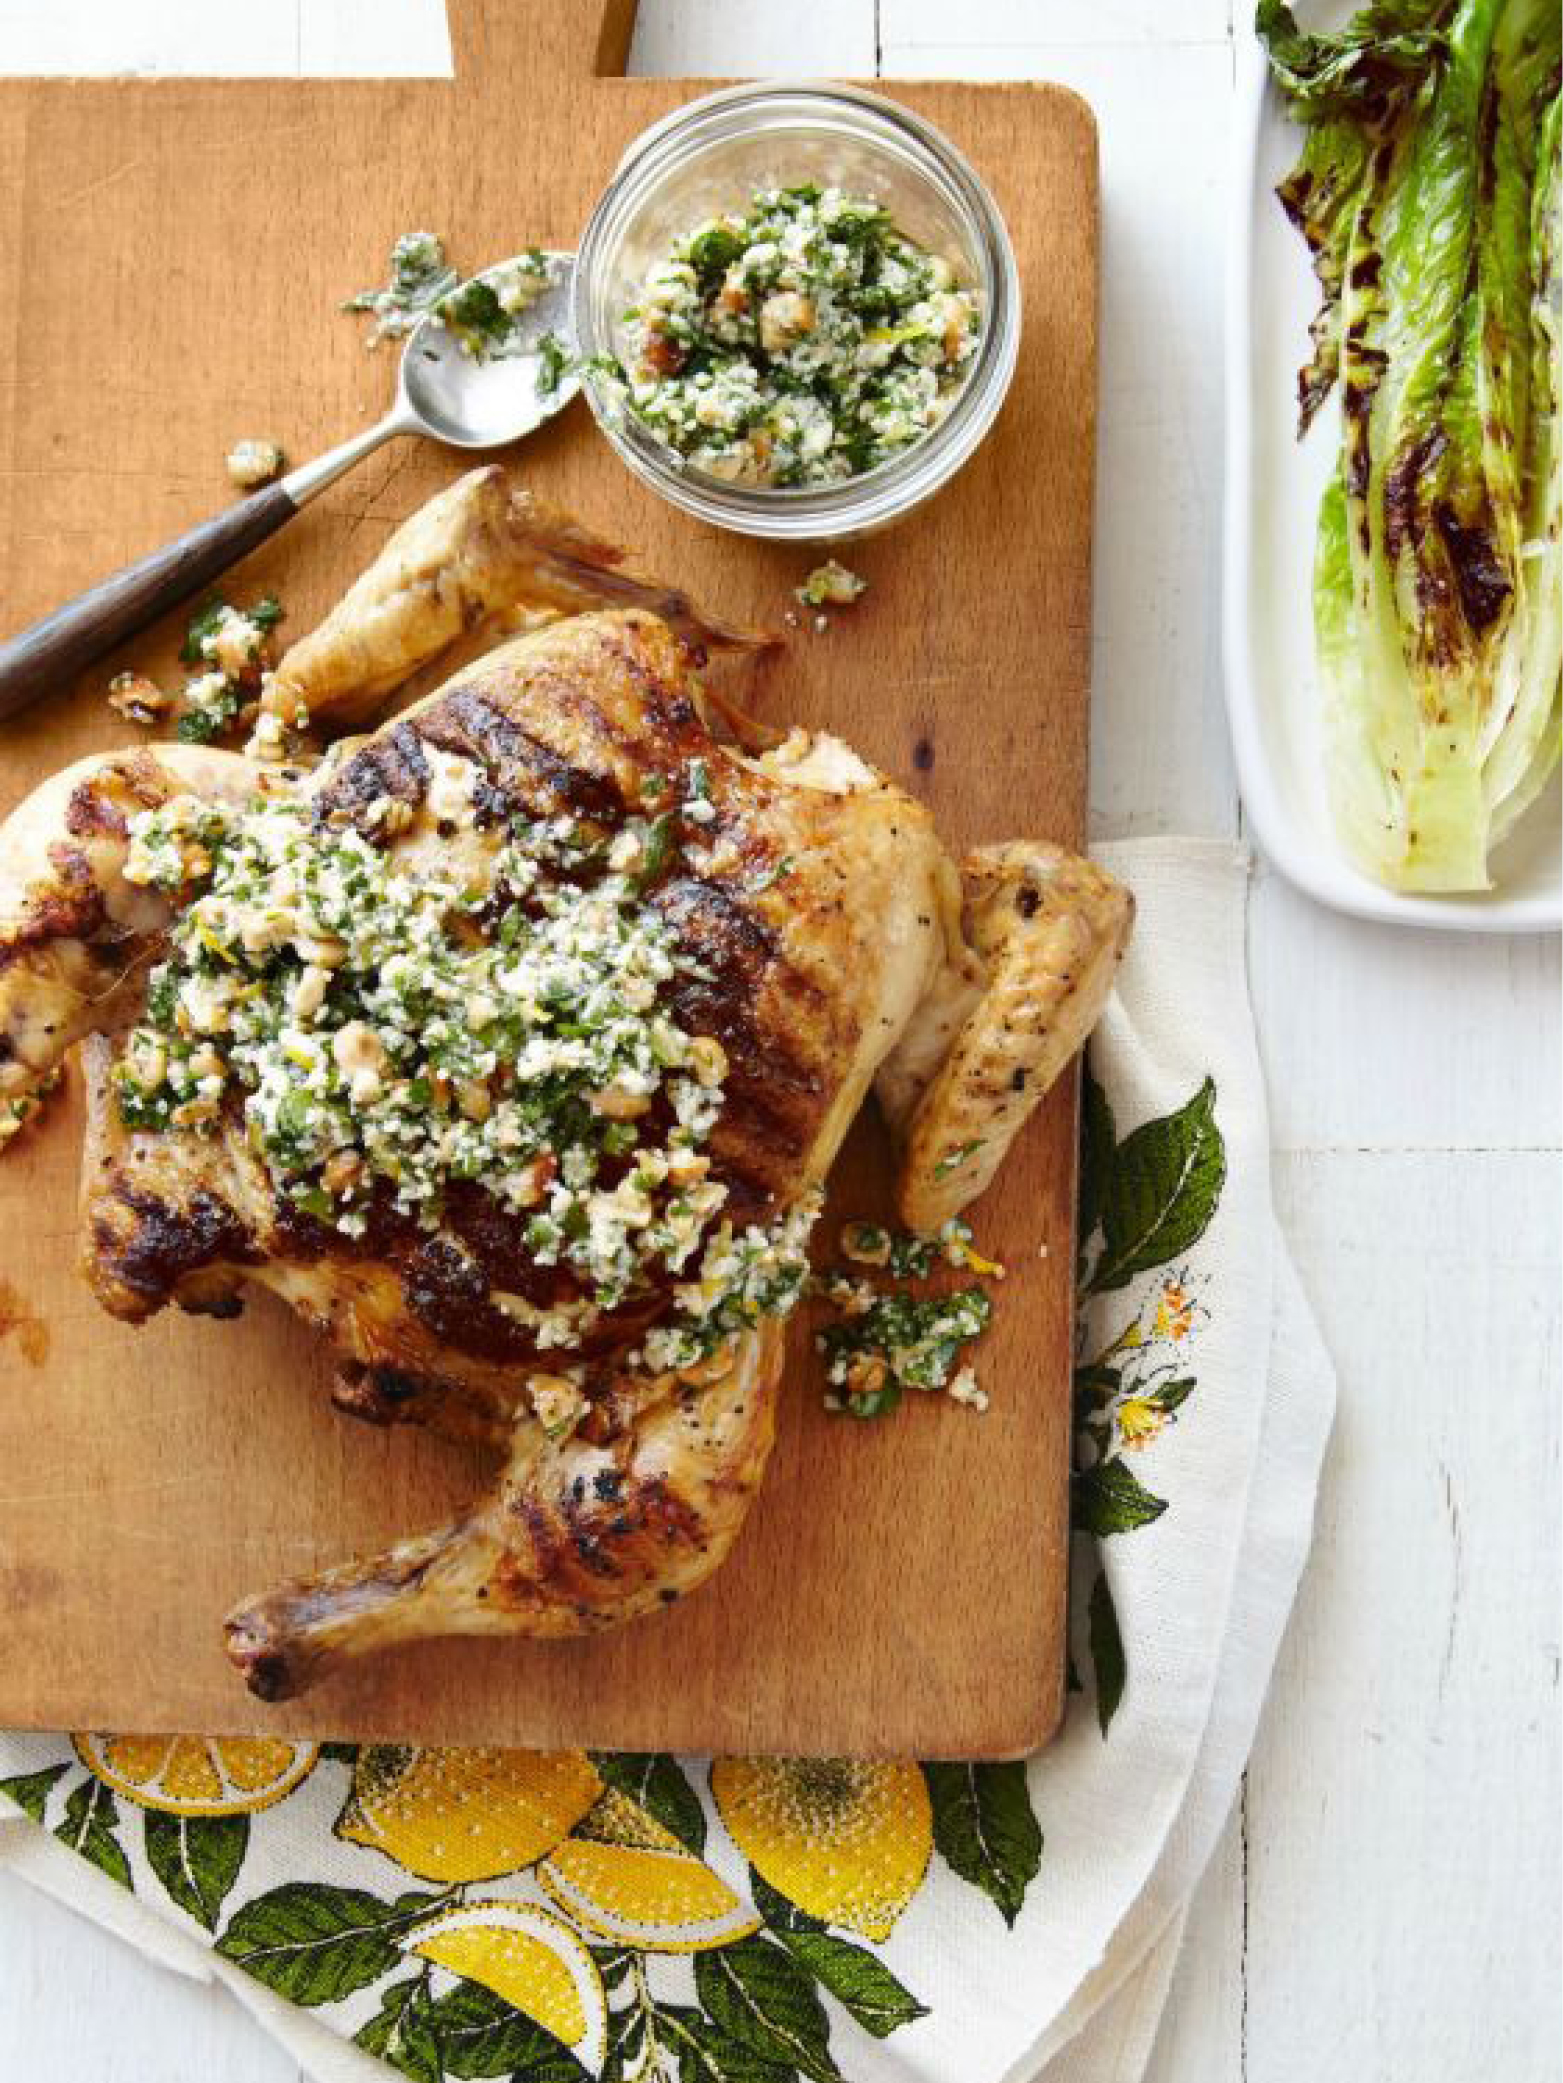 Flattened Chicken and Grilled Romaine with Parsley-Lemon Sauce  Country Living